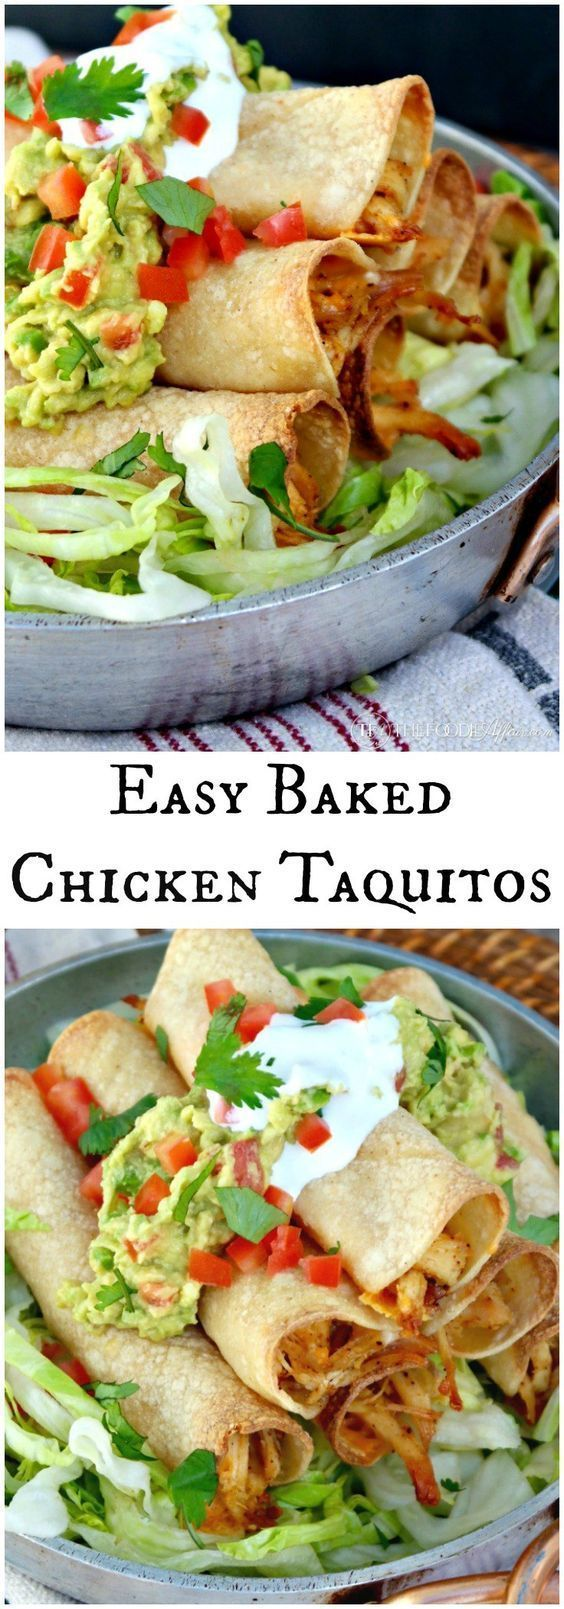 Baked Chicken Taquitos filled with seasoned shredded chicken and cheese! Add your favorite toppings and enjoy at your next fiesta! #Taquitos #Chicken #Baked